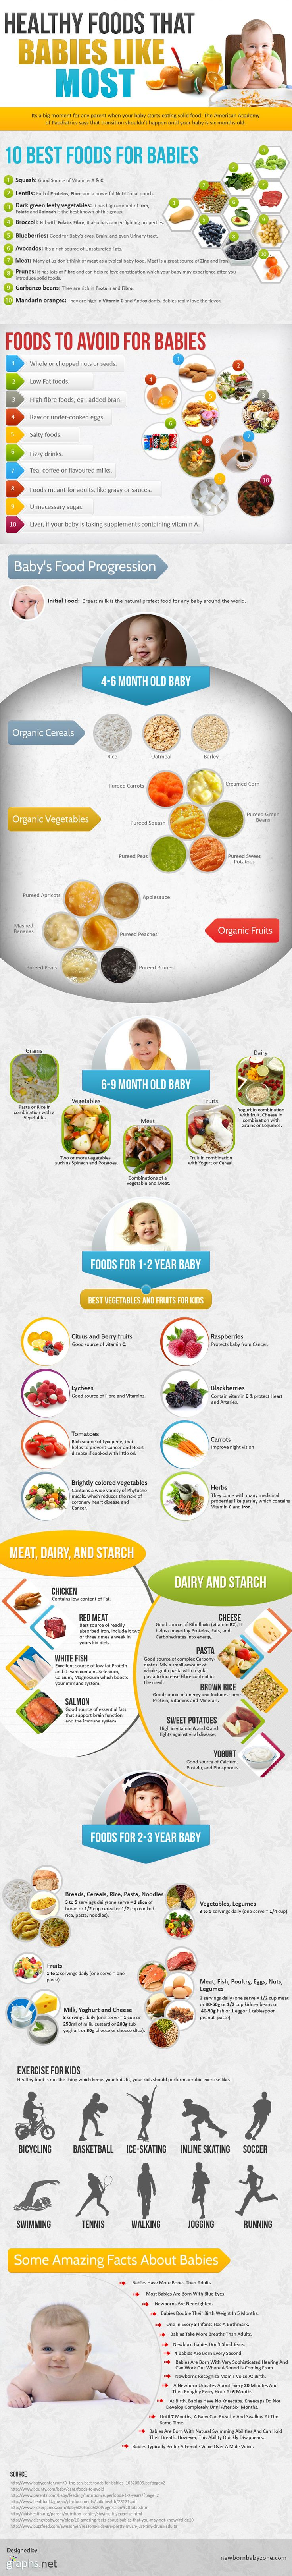 Healthy Foods That Babies Like Most : A First Time Mom's Guide | For The First Timer